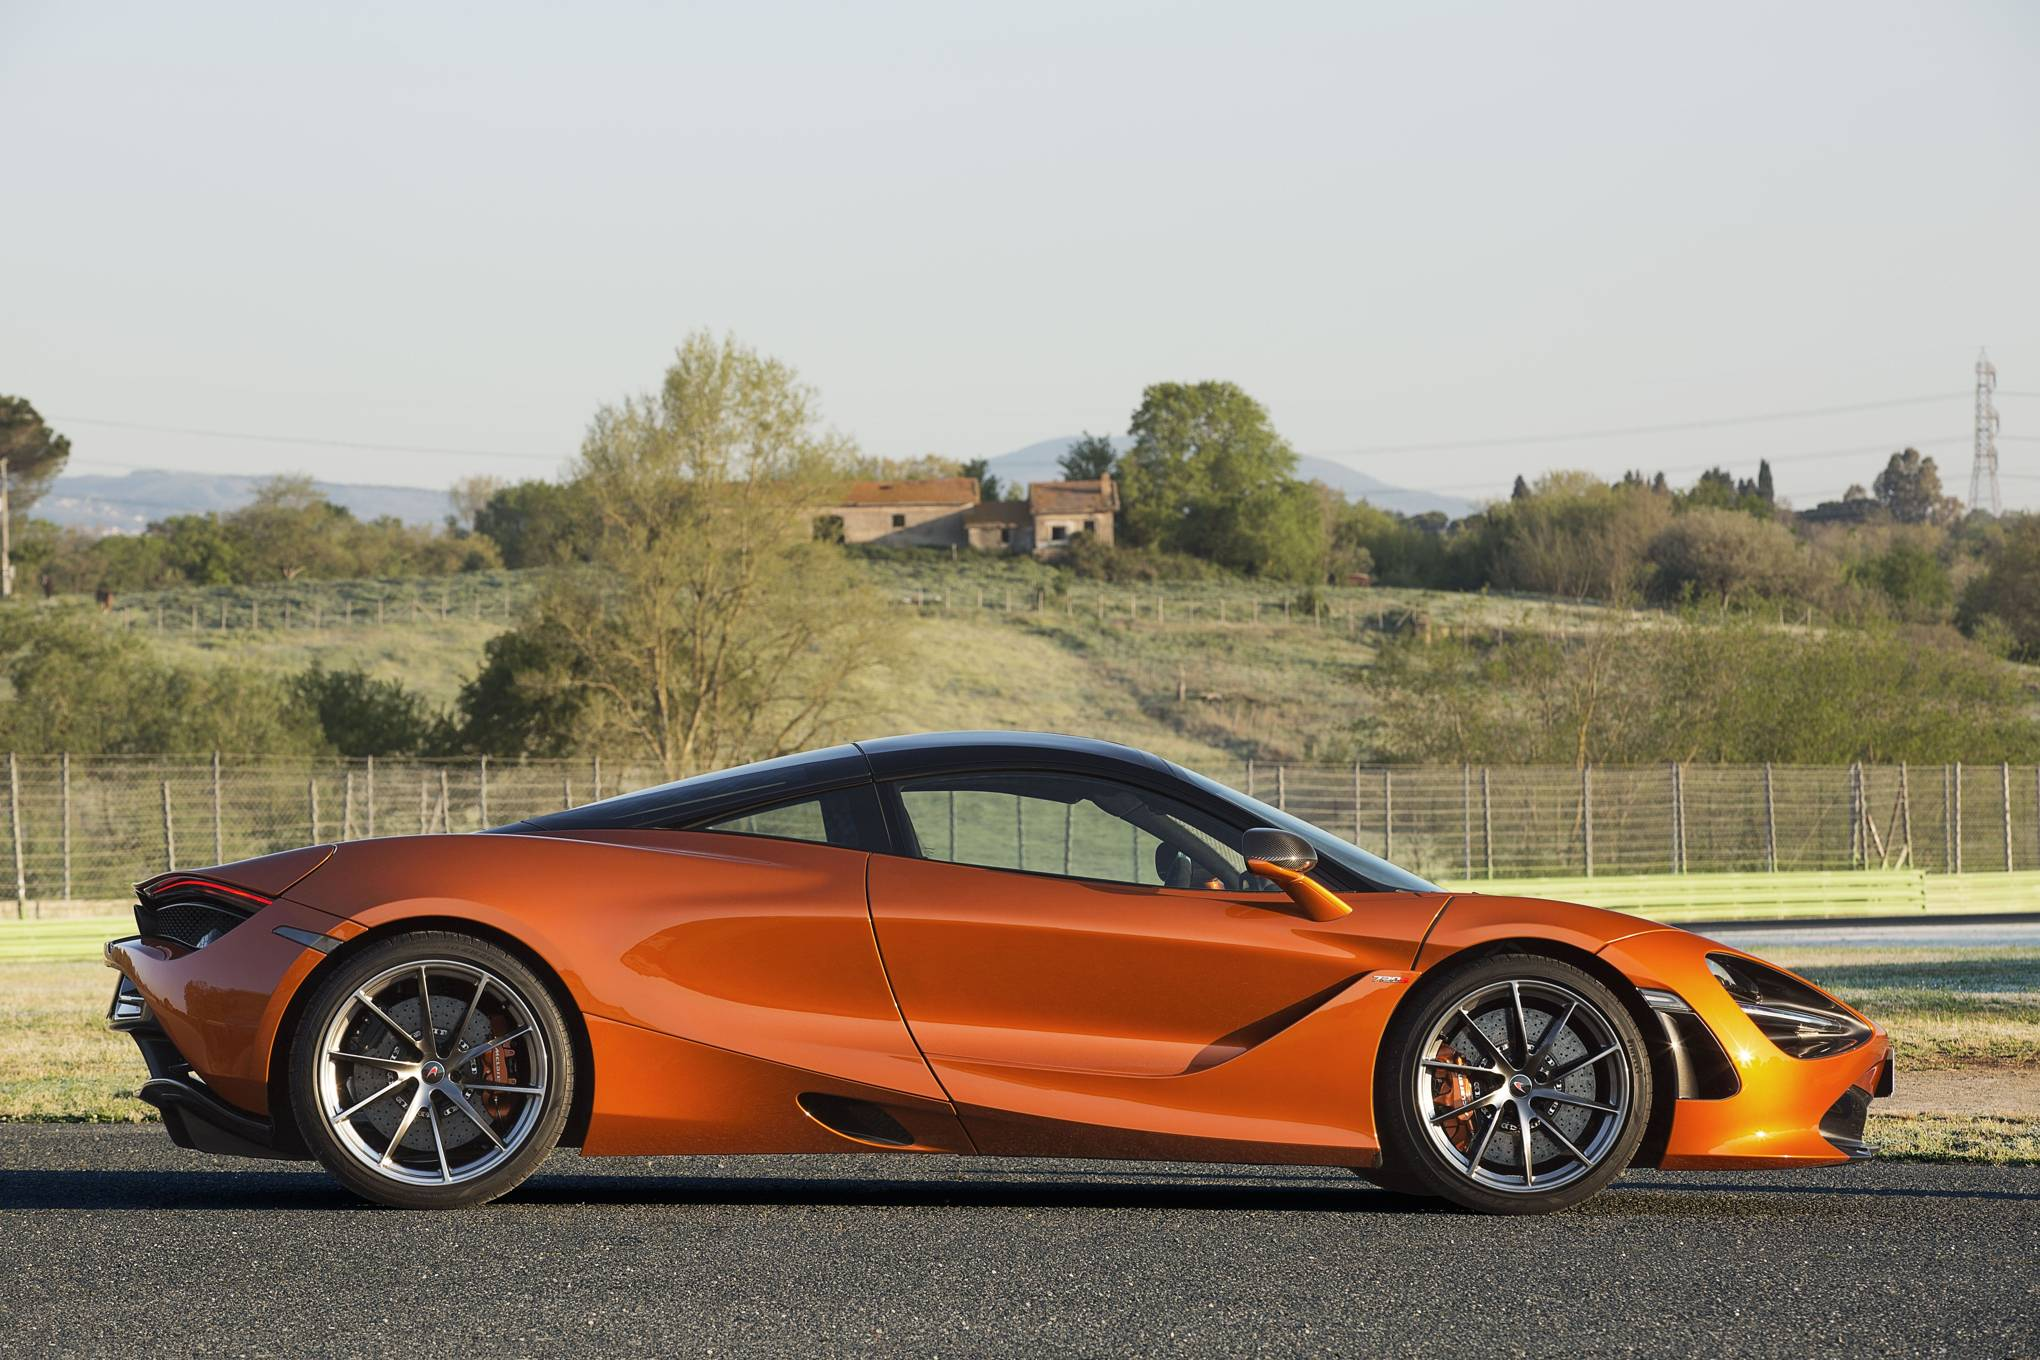 Mclaren Price 2017 >> McLaren 720S review: more theatre than a Ferrari | WIRED UK